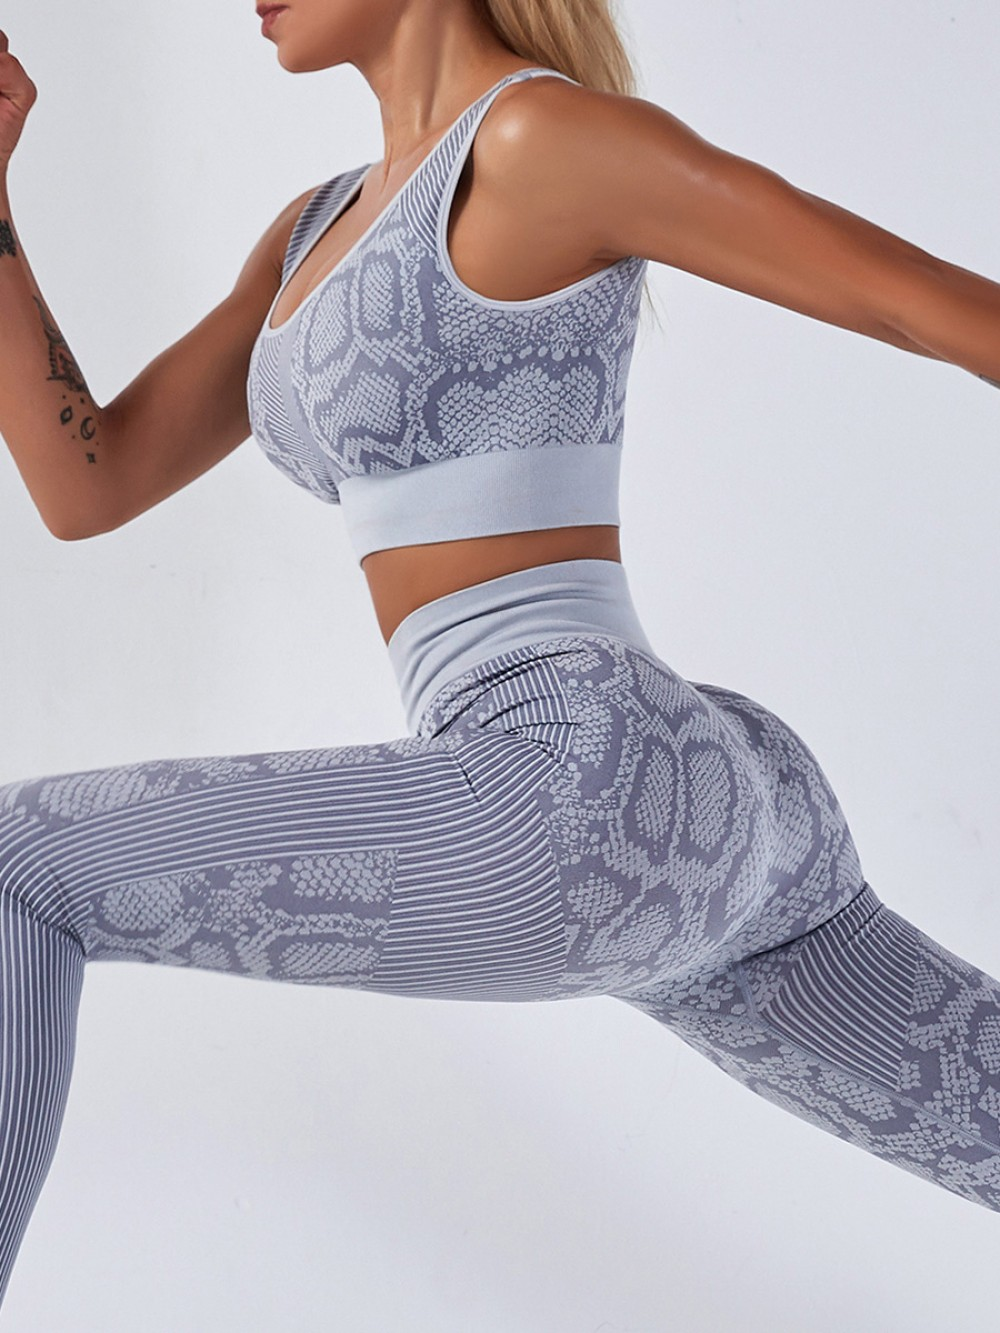 Gray Ankle Length Yoga Two-Piece High Waist Workout Activewear